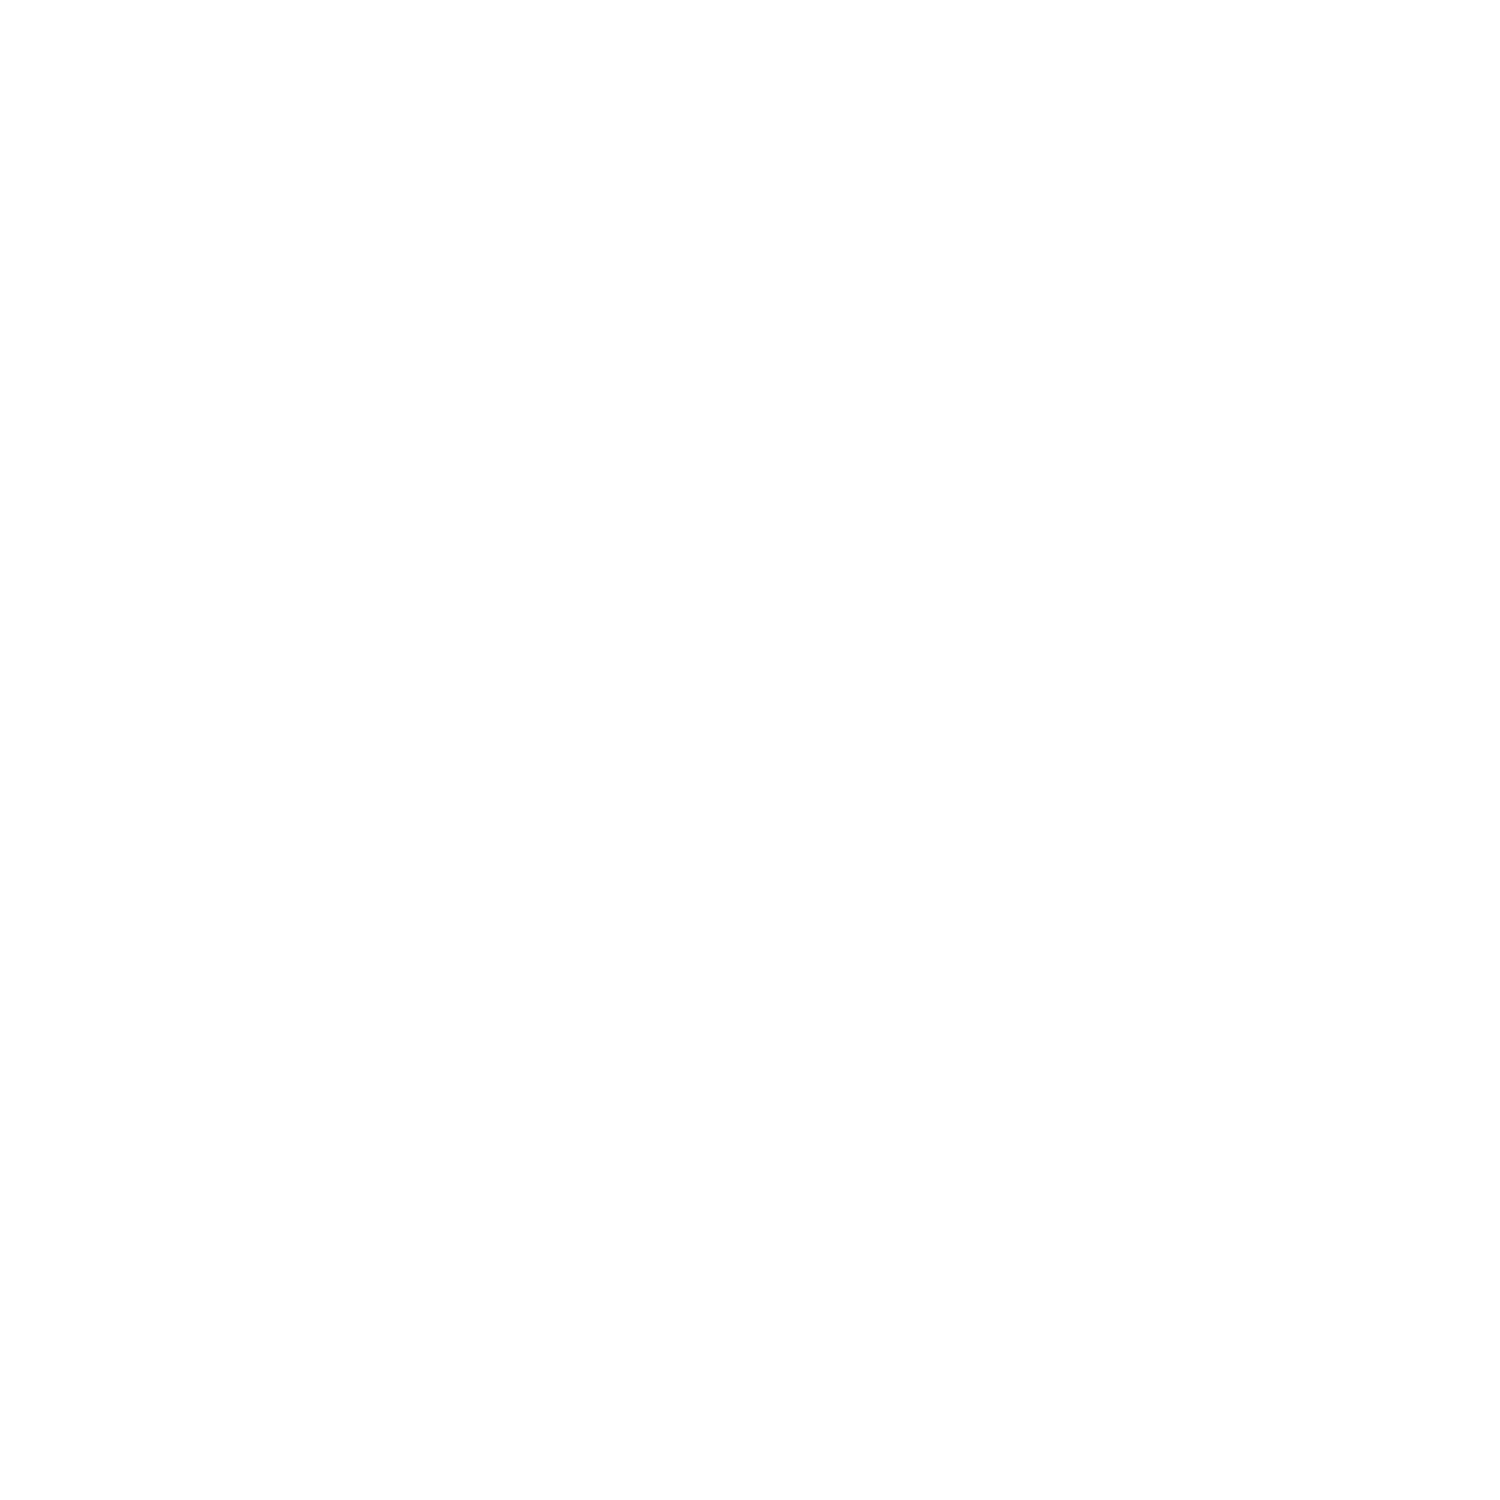 Coburg Brewing Co